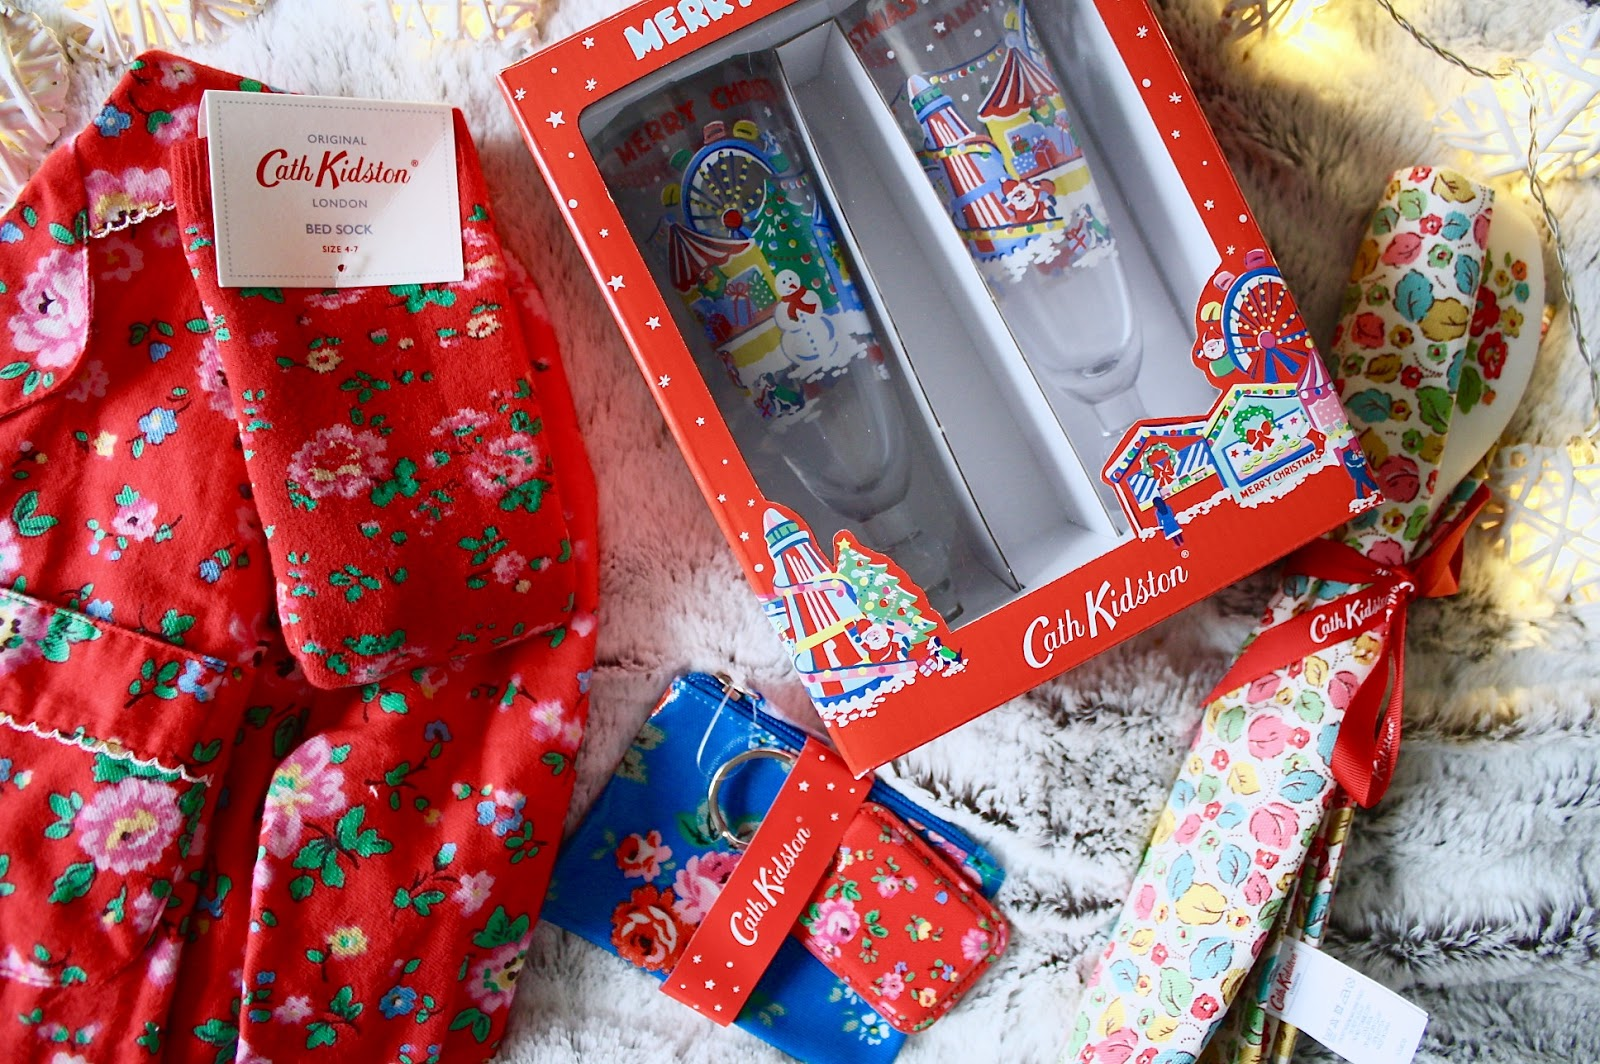 Cath Kidston Pyjamas and Homeware